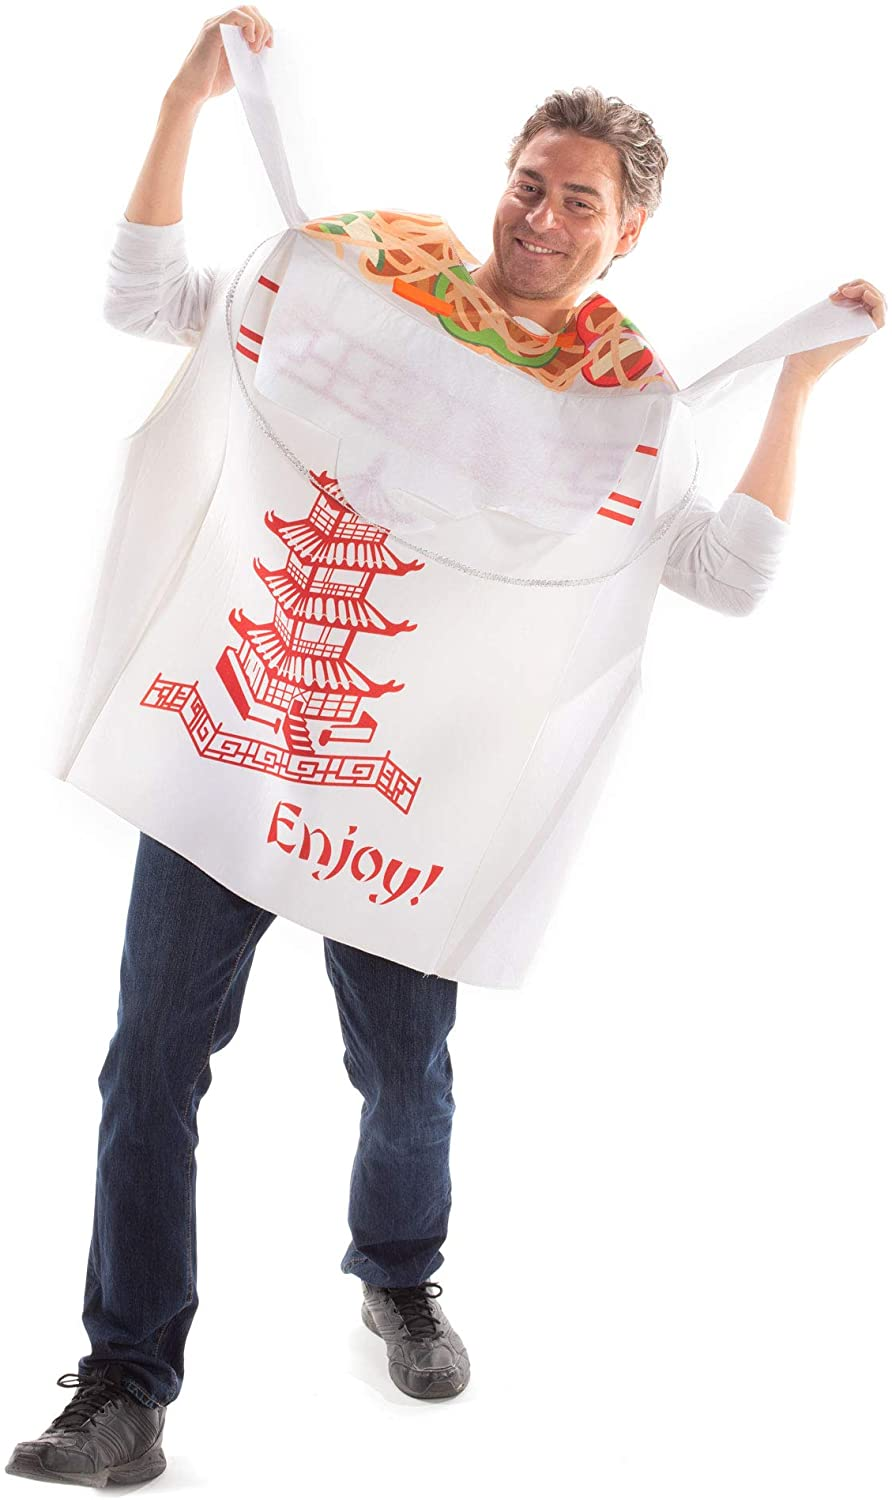 Tasty Chinese Take Out Halloween Costume - One Size Unisex Food & Noodle Outfit